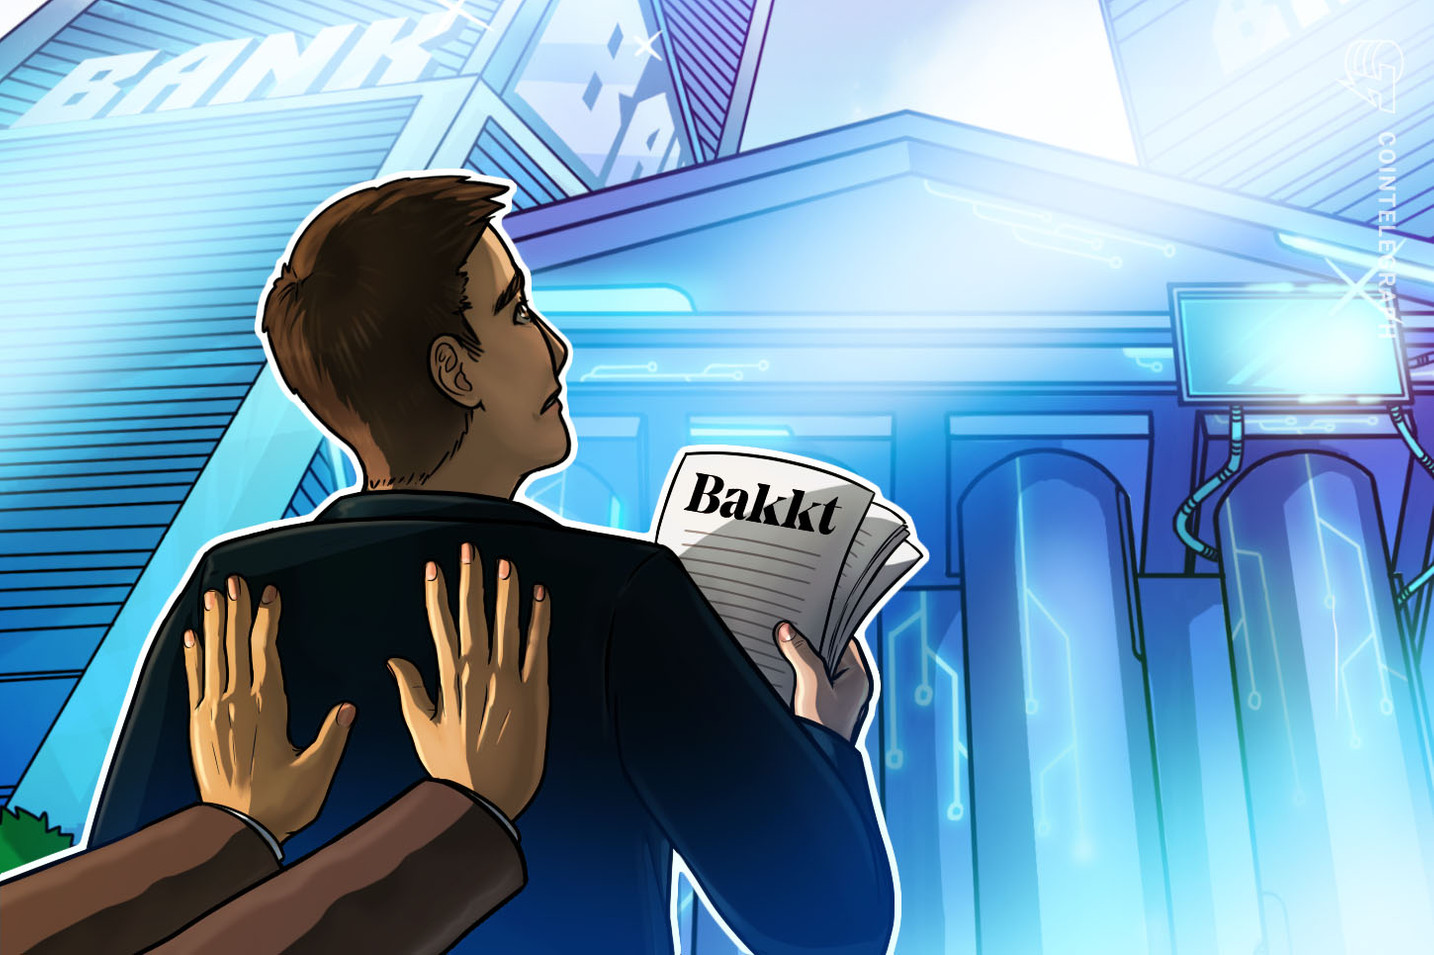 Bakkt Launches 1st Regulated BTC Options as CEO Enters US Senate